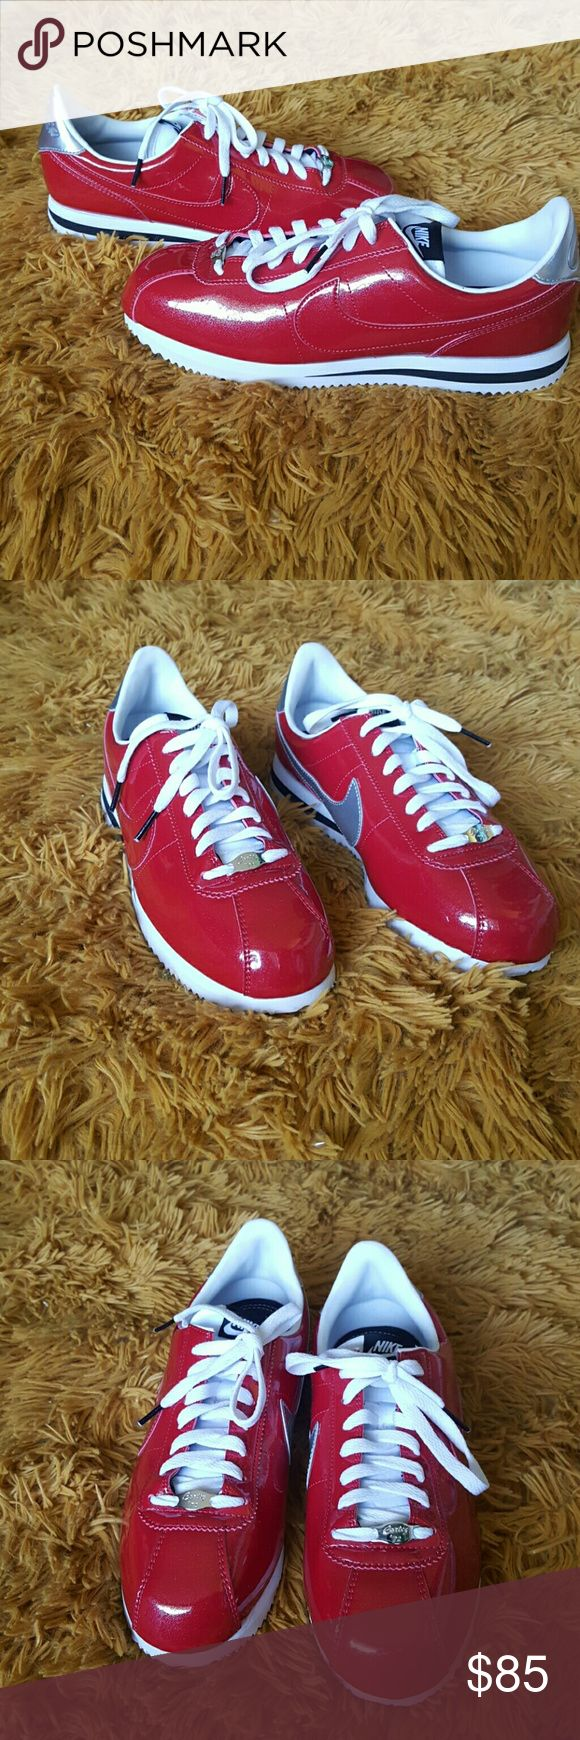 Nike Cortez Shoes NEW without box! Style: Cortez Basic Prem QS Size: Men's 9 They are a shiny patent red , best seen in last picture. Nike Shoes